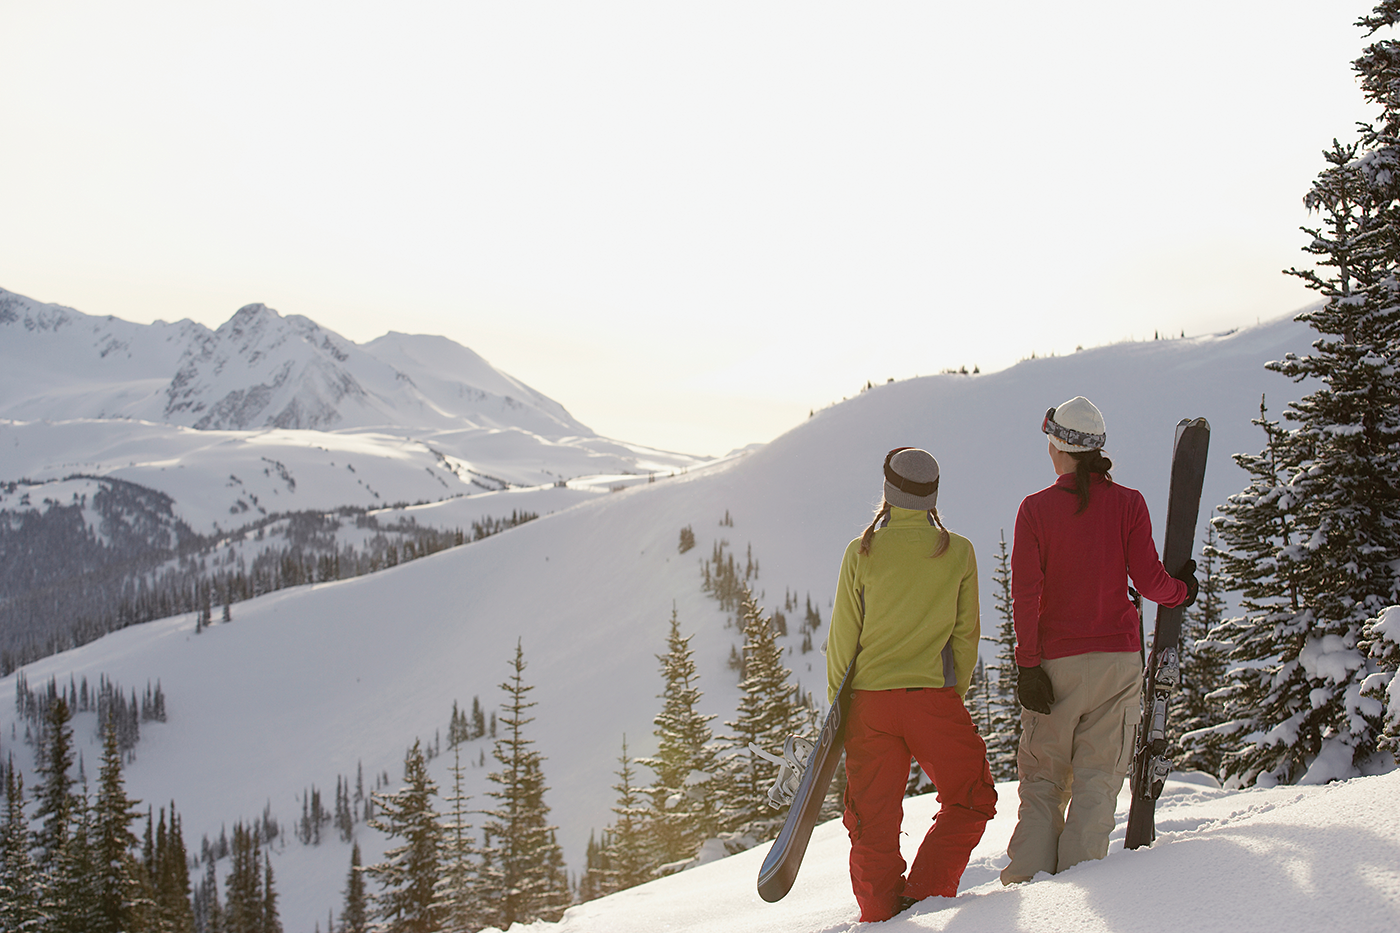 specials at seventh mountain resort in seventh mountain resort